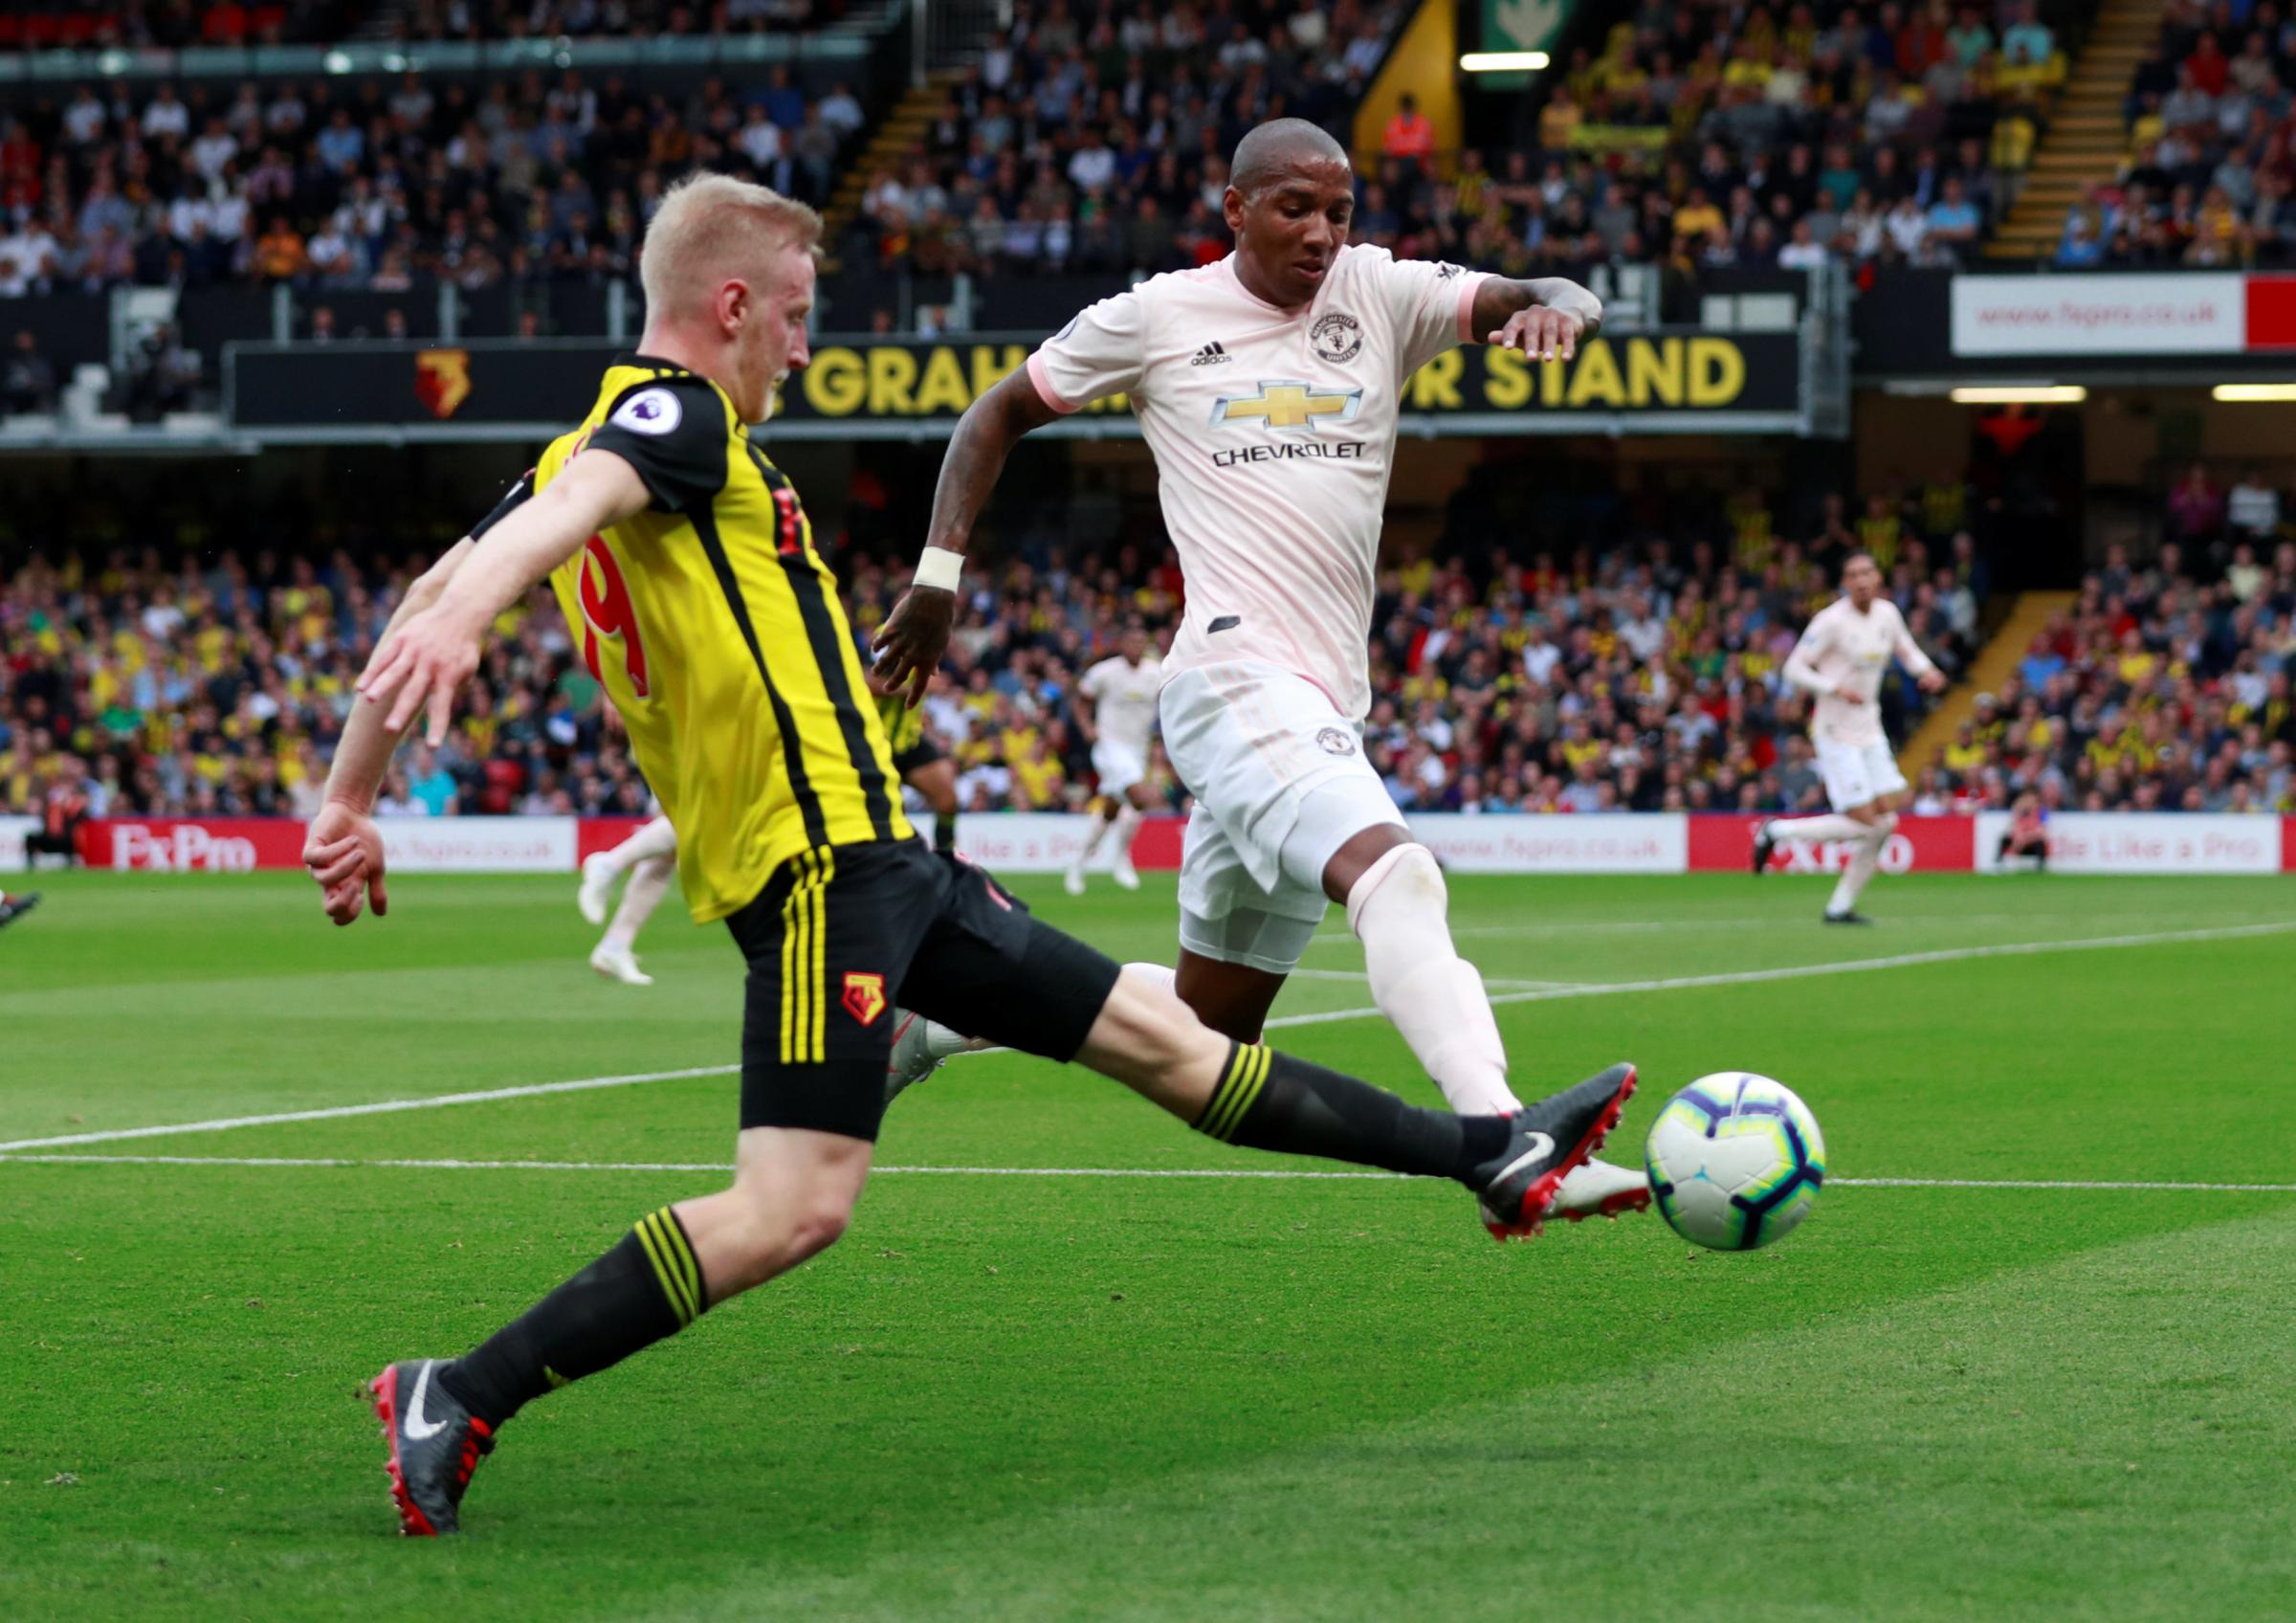 Inter Milan's former Watford and Manchester United winger Ashley Young provides coronavirus advice